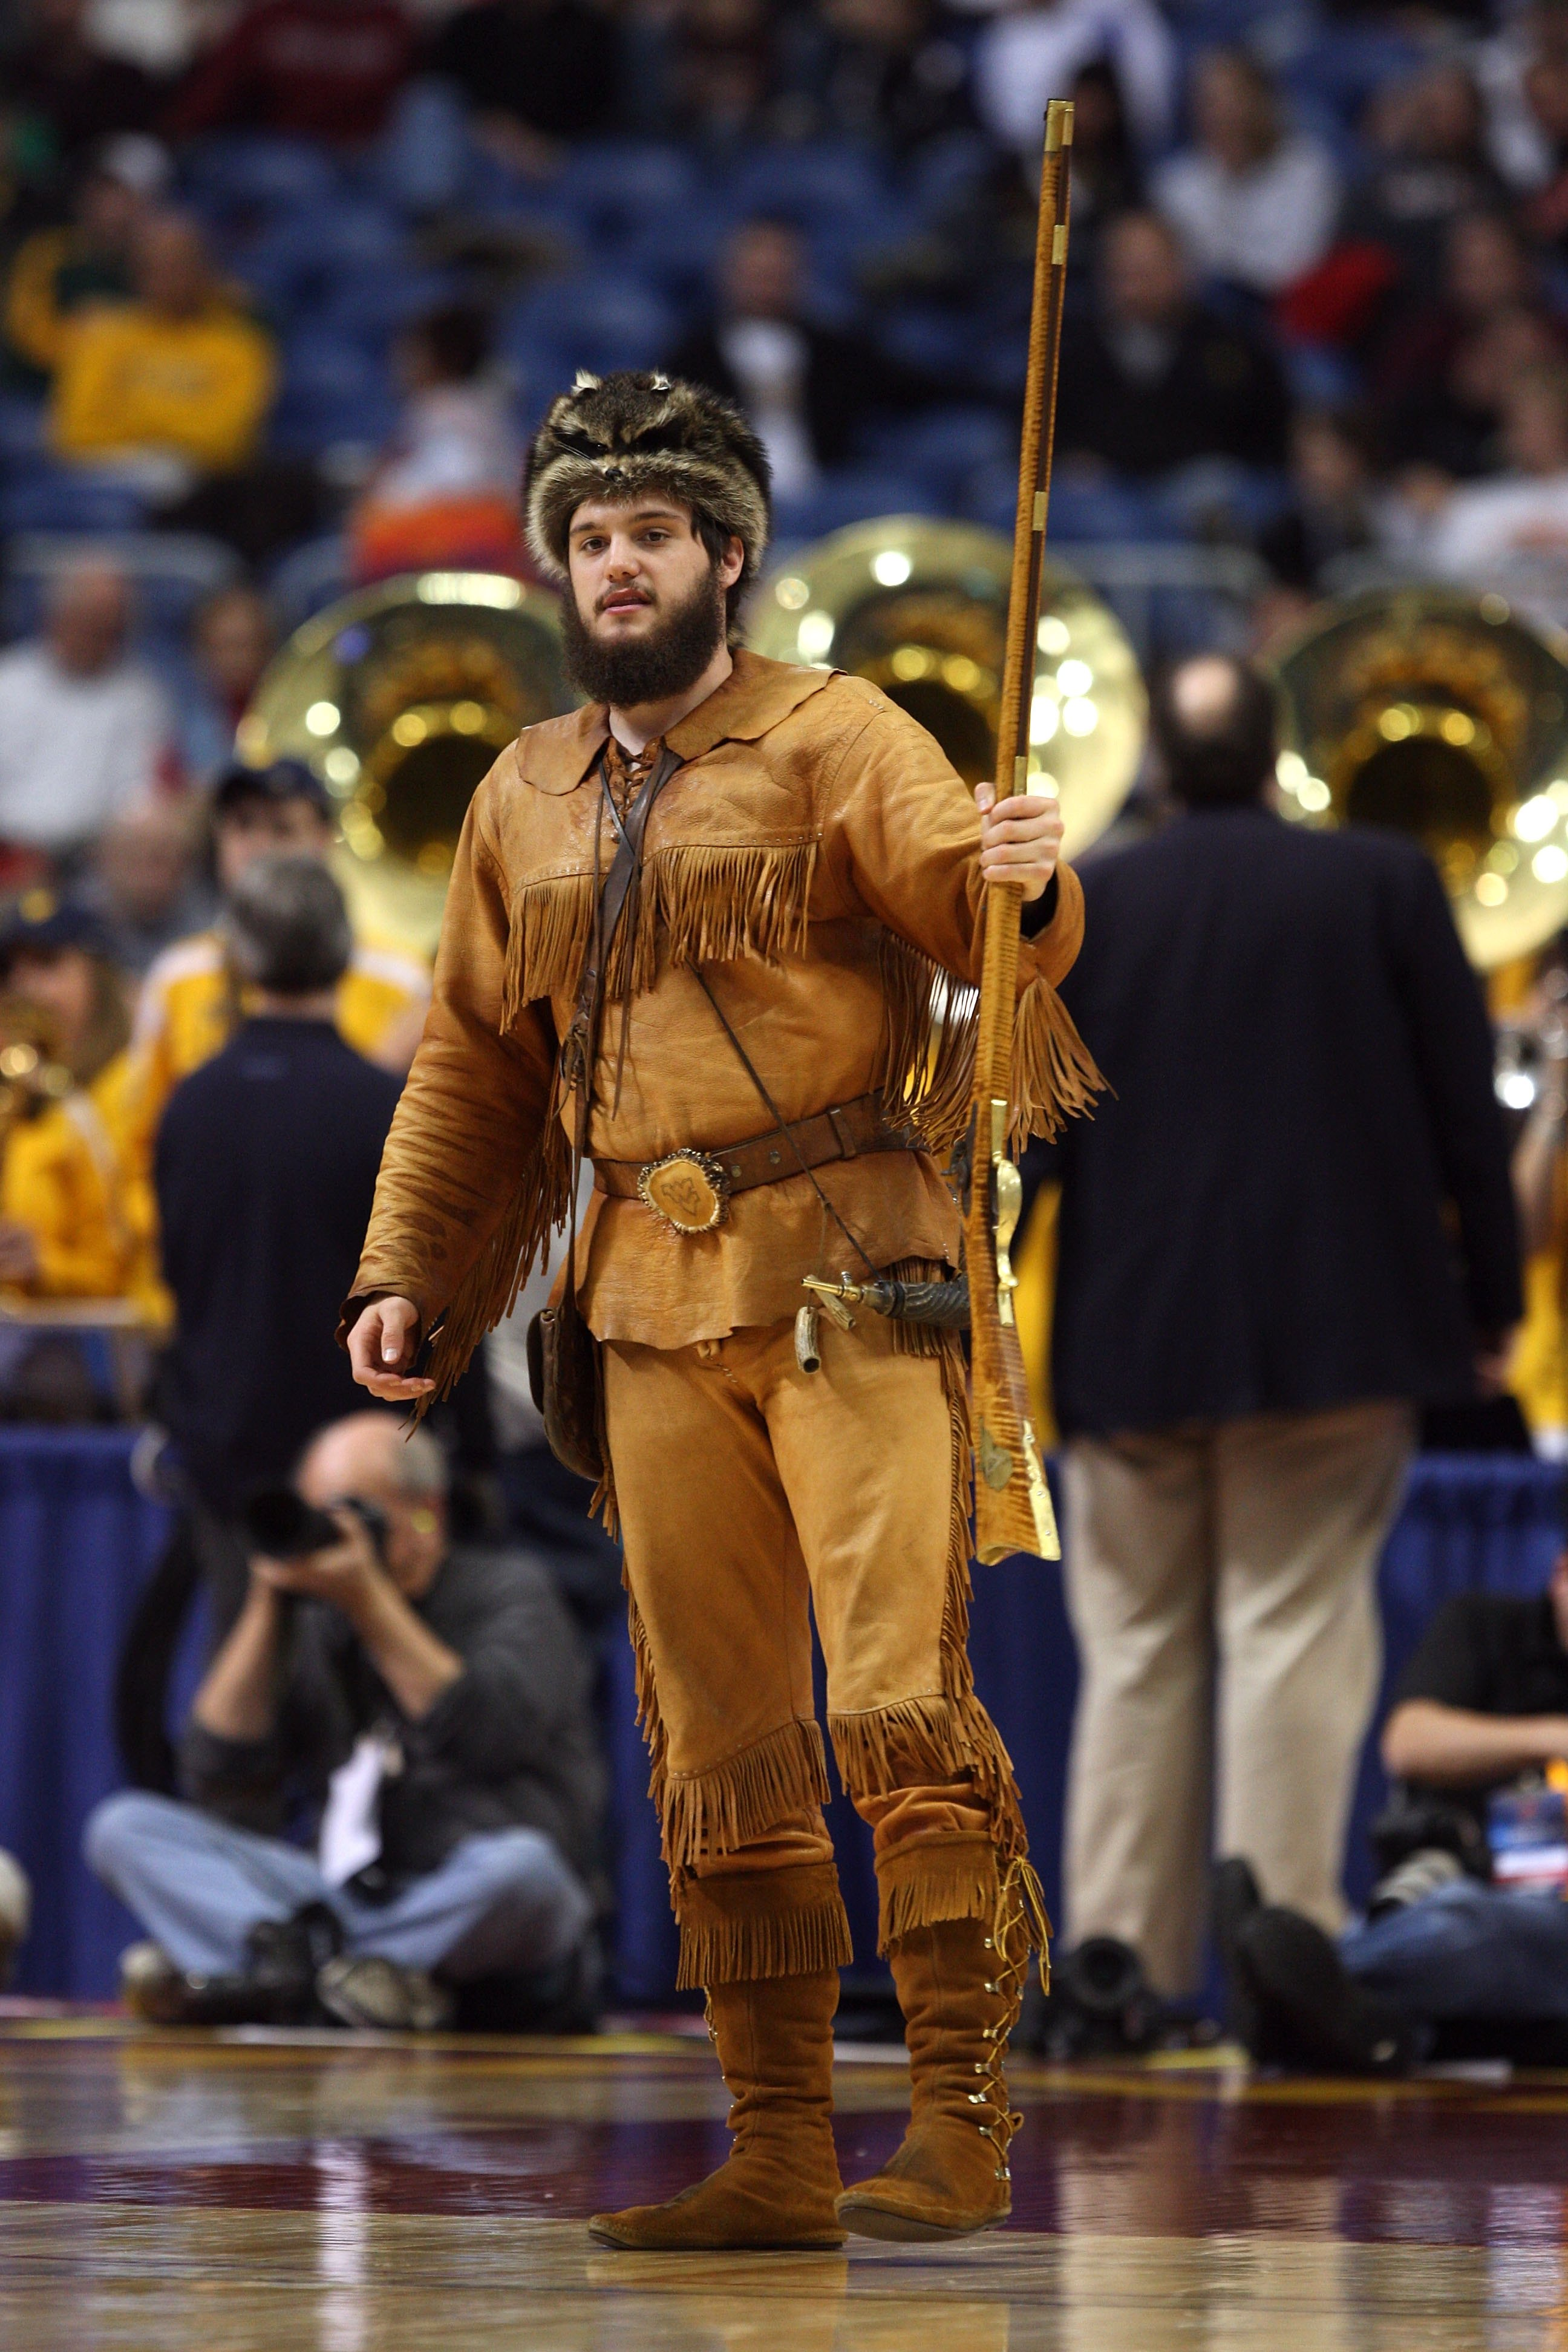 MINNEAPOLIS - MARCH 20:  The mascot for the West Virginia Moutaineers stands on the court against the Dayton Flyers during the first round of the NCAA Division I Men's Basketball Tournament at the Hubert H. Humphrey Metrodome on March 20, 2009 in Minneapo